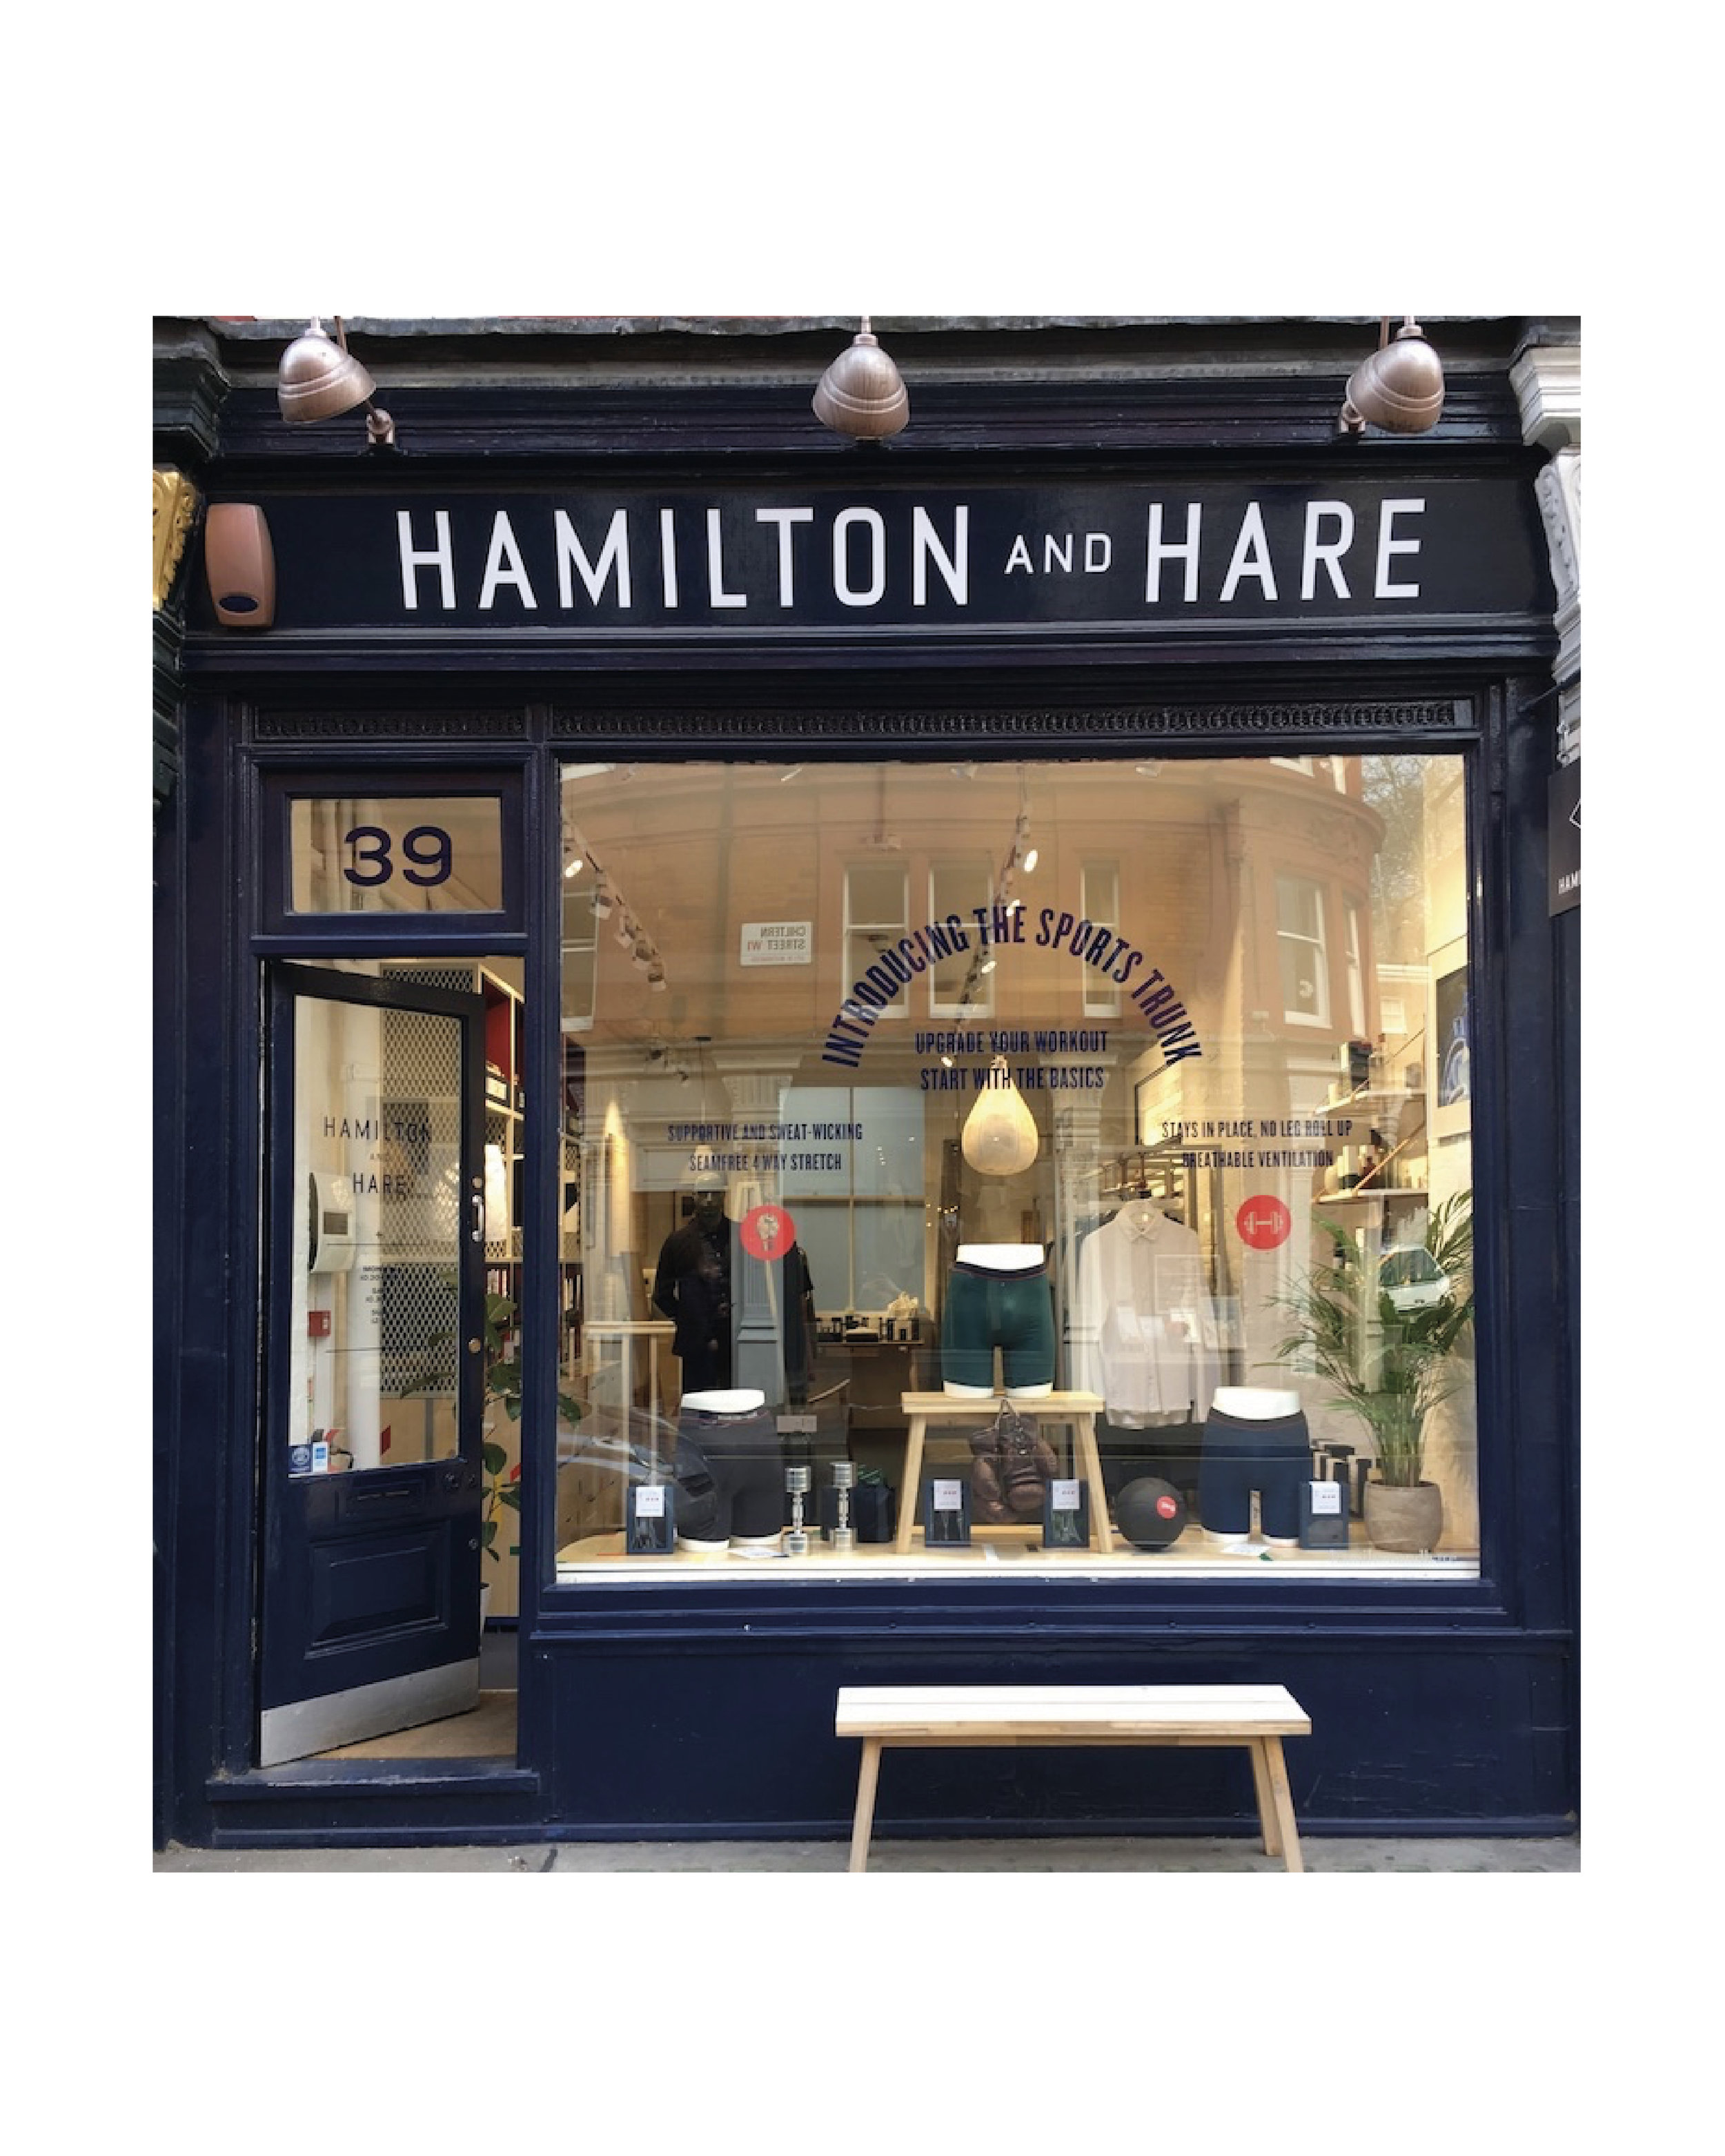 Shop Window Display For Hamilton and Hare